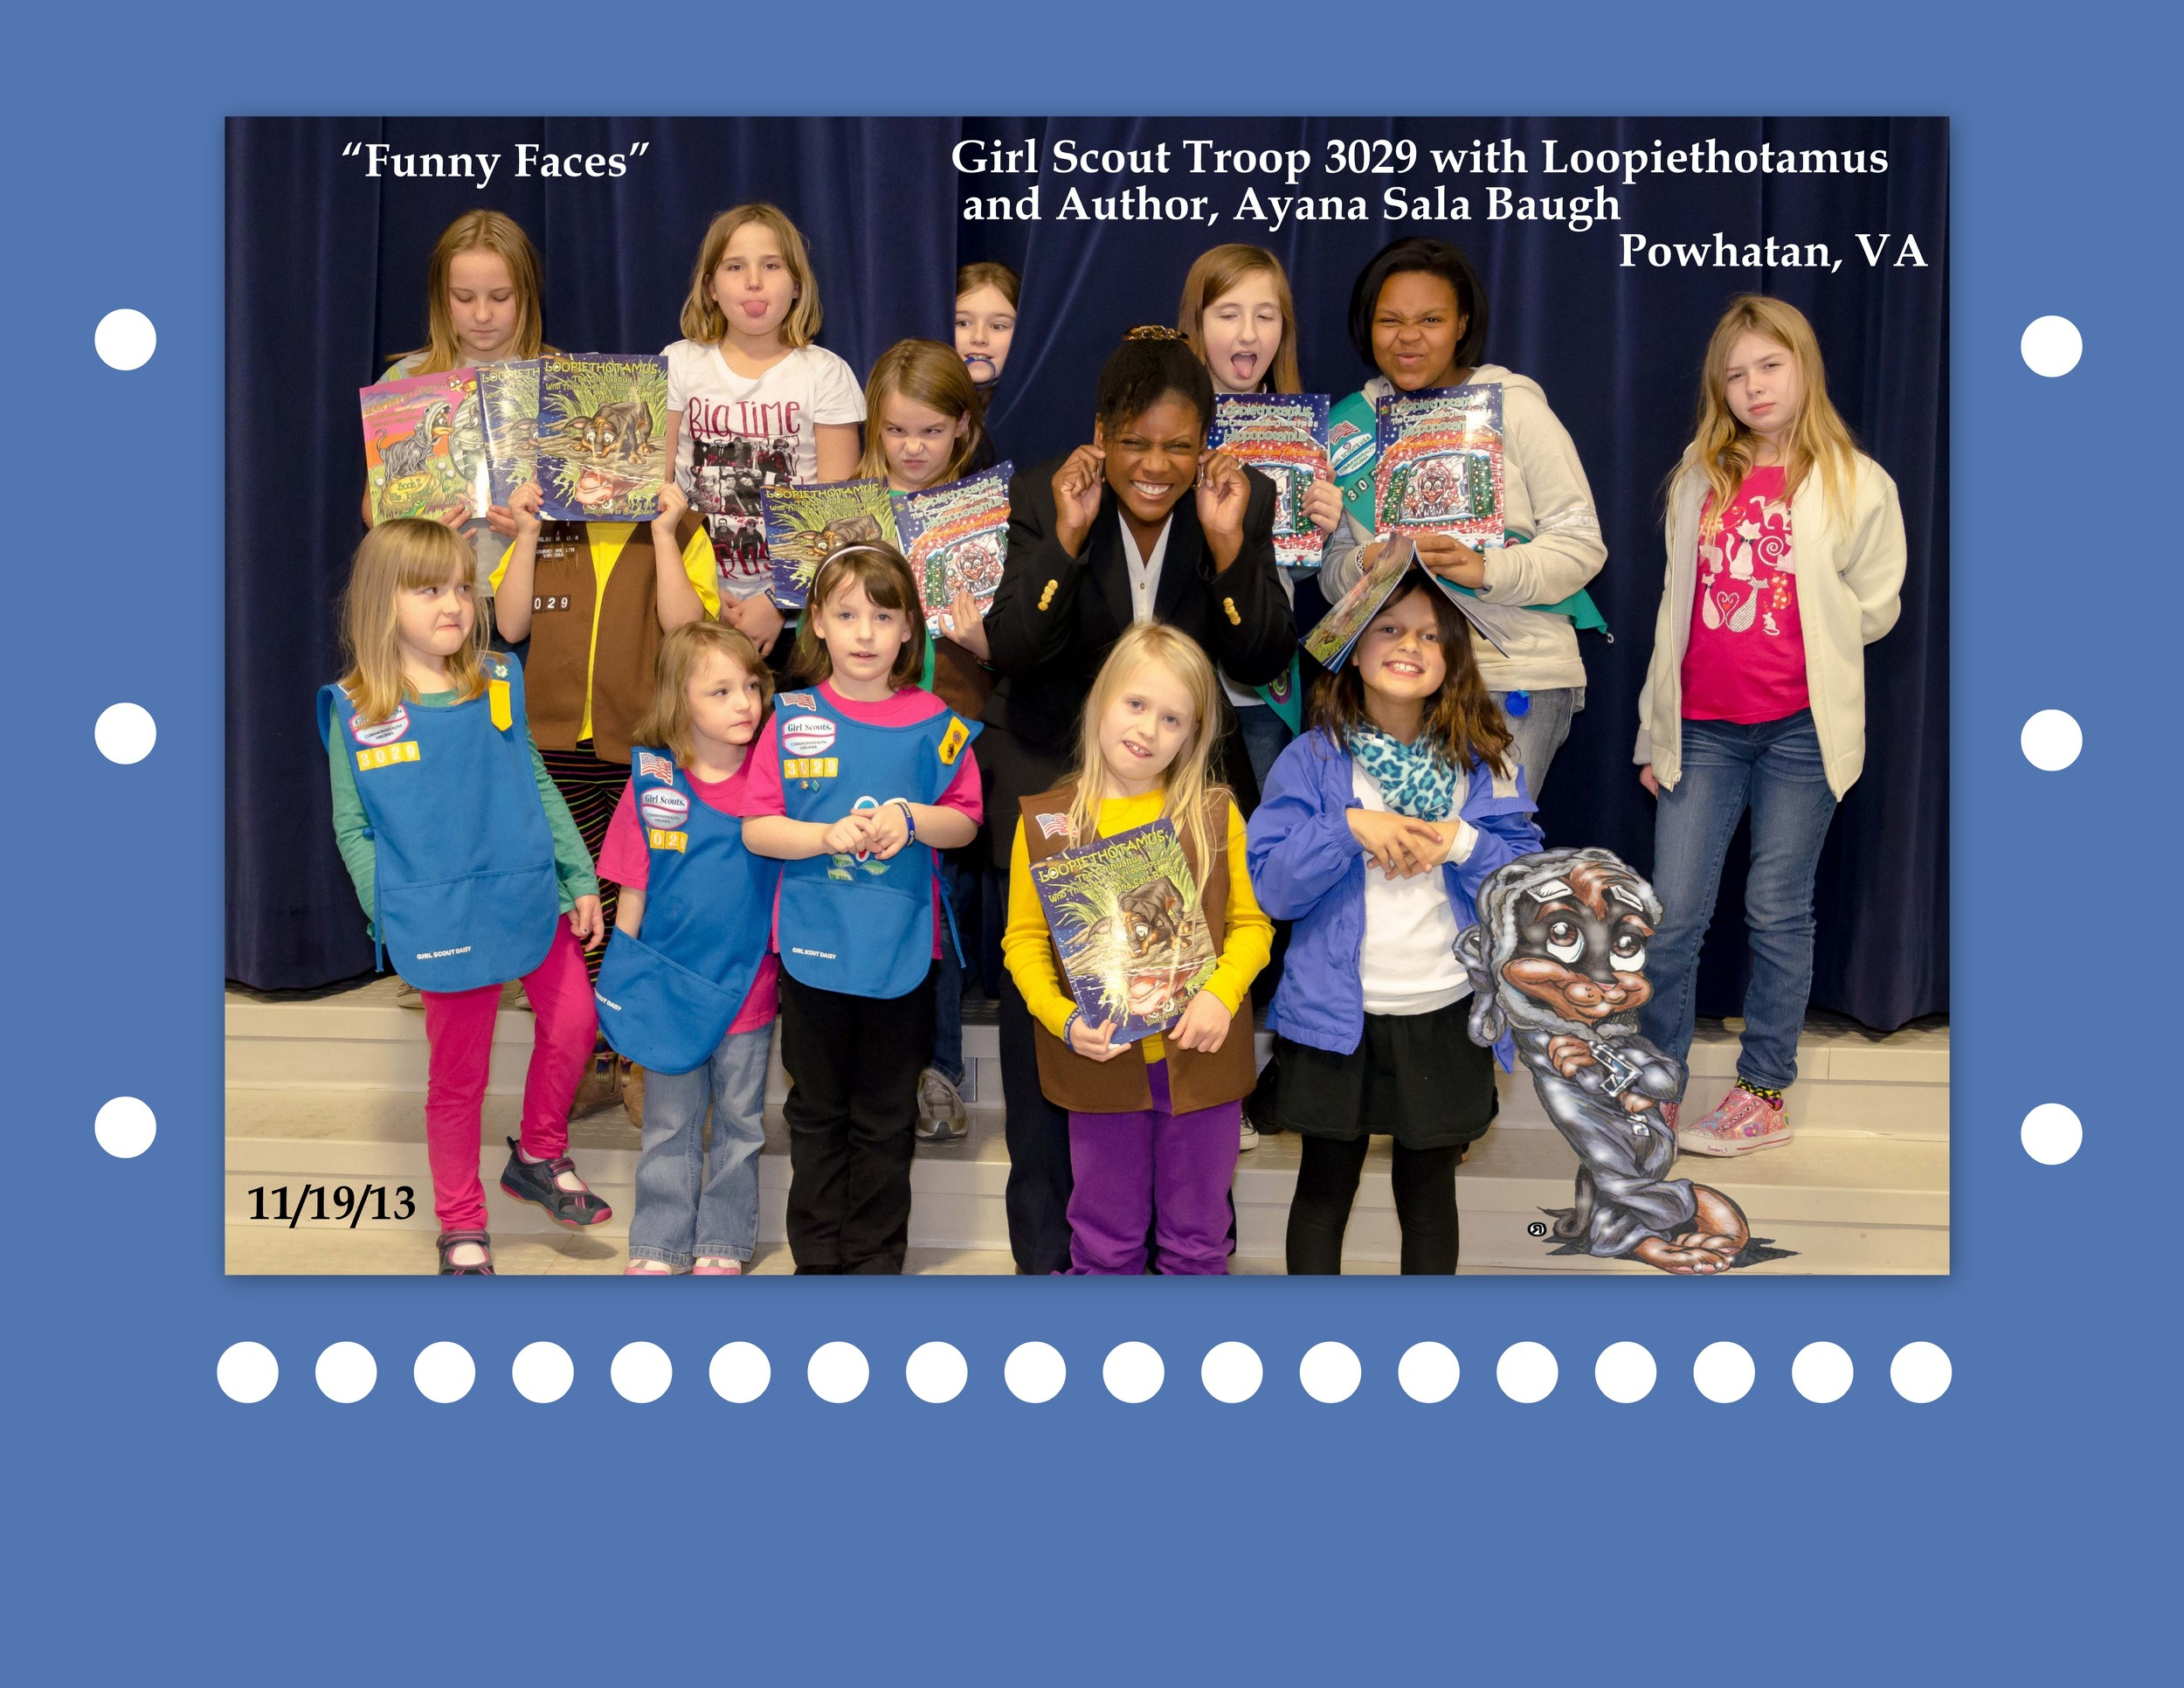 Girl Scouts Troop 3029 Funny Faces pic done in Picasa.jpg